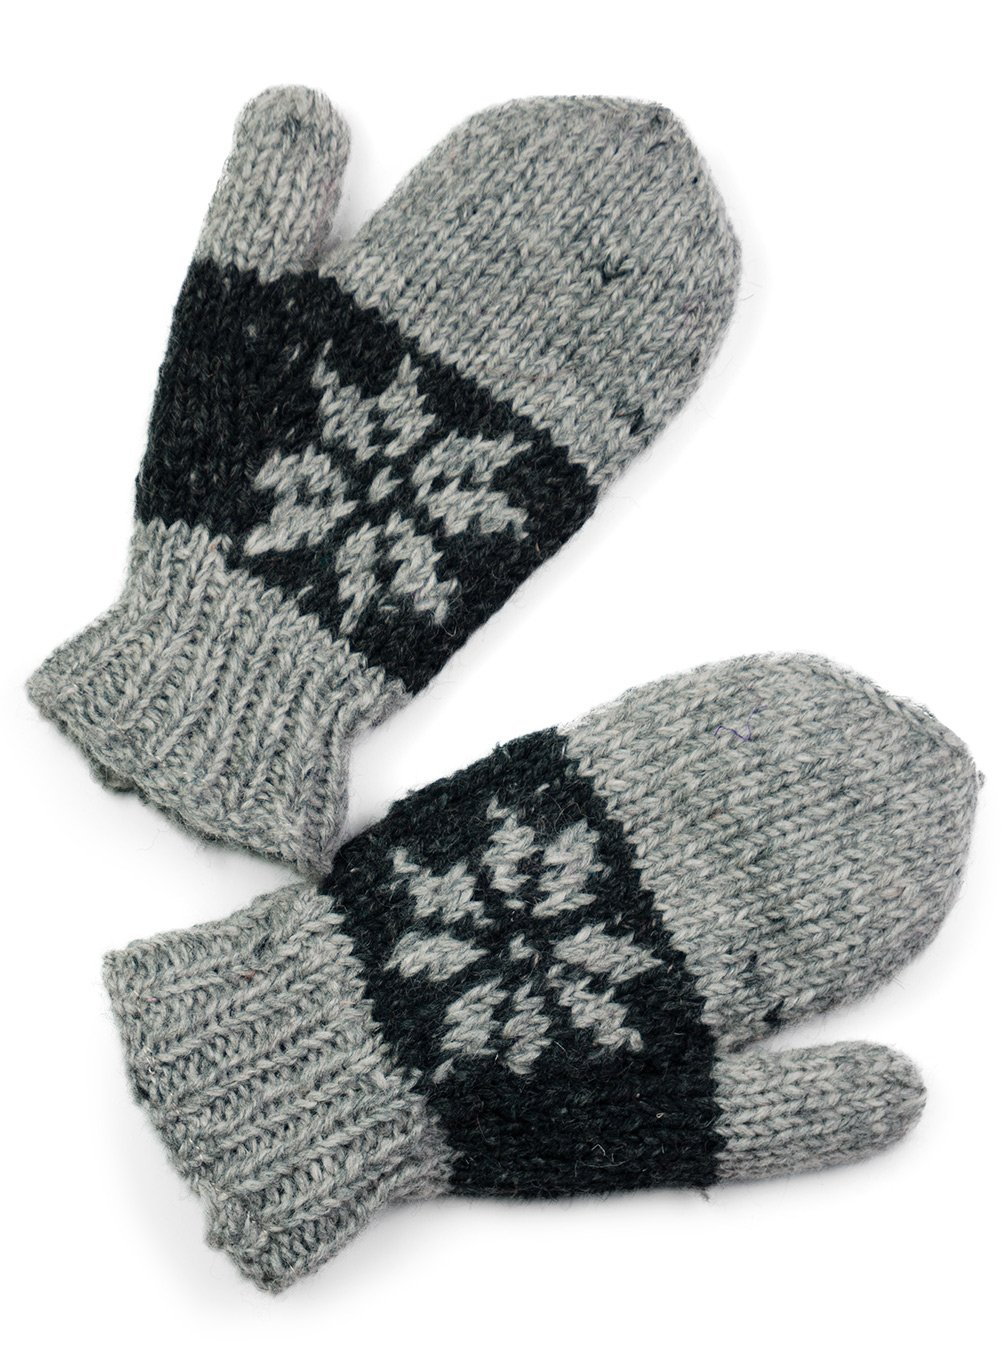 TCG Men's Hand Knit Wool Snowflake Mittens - Pewter & Charcoal